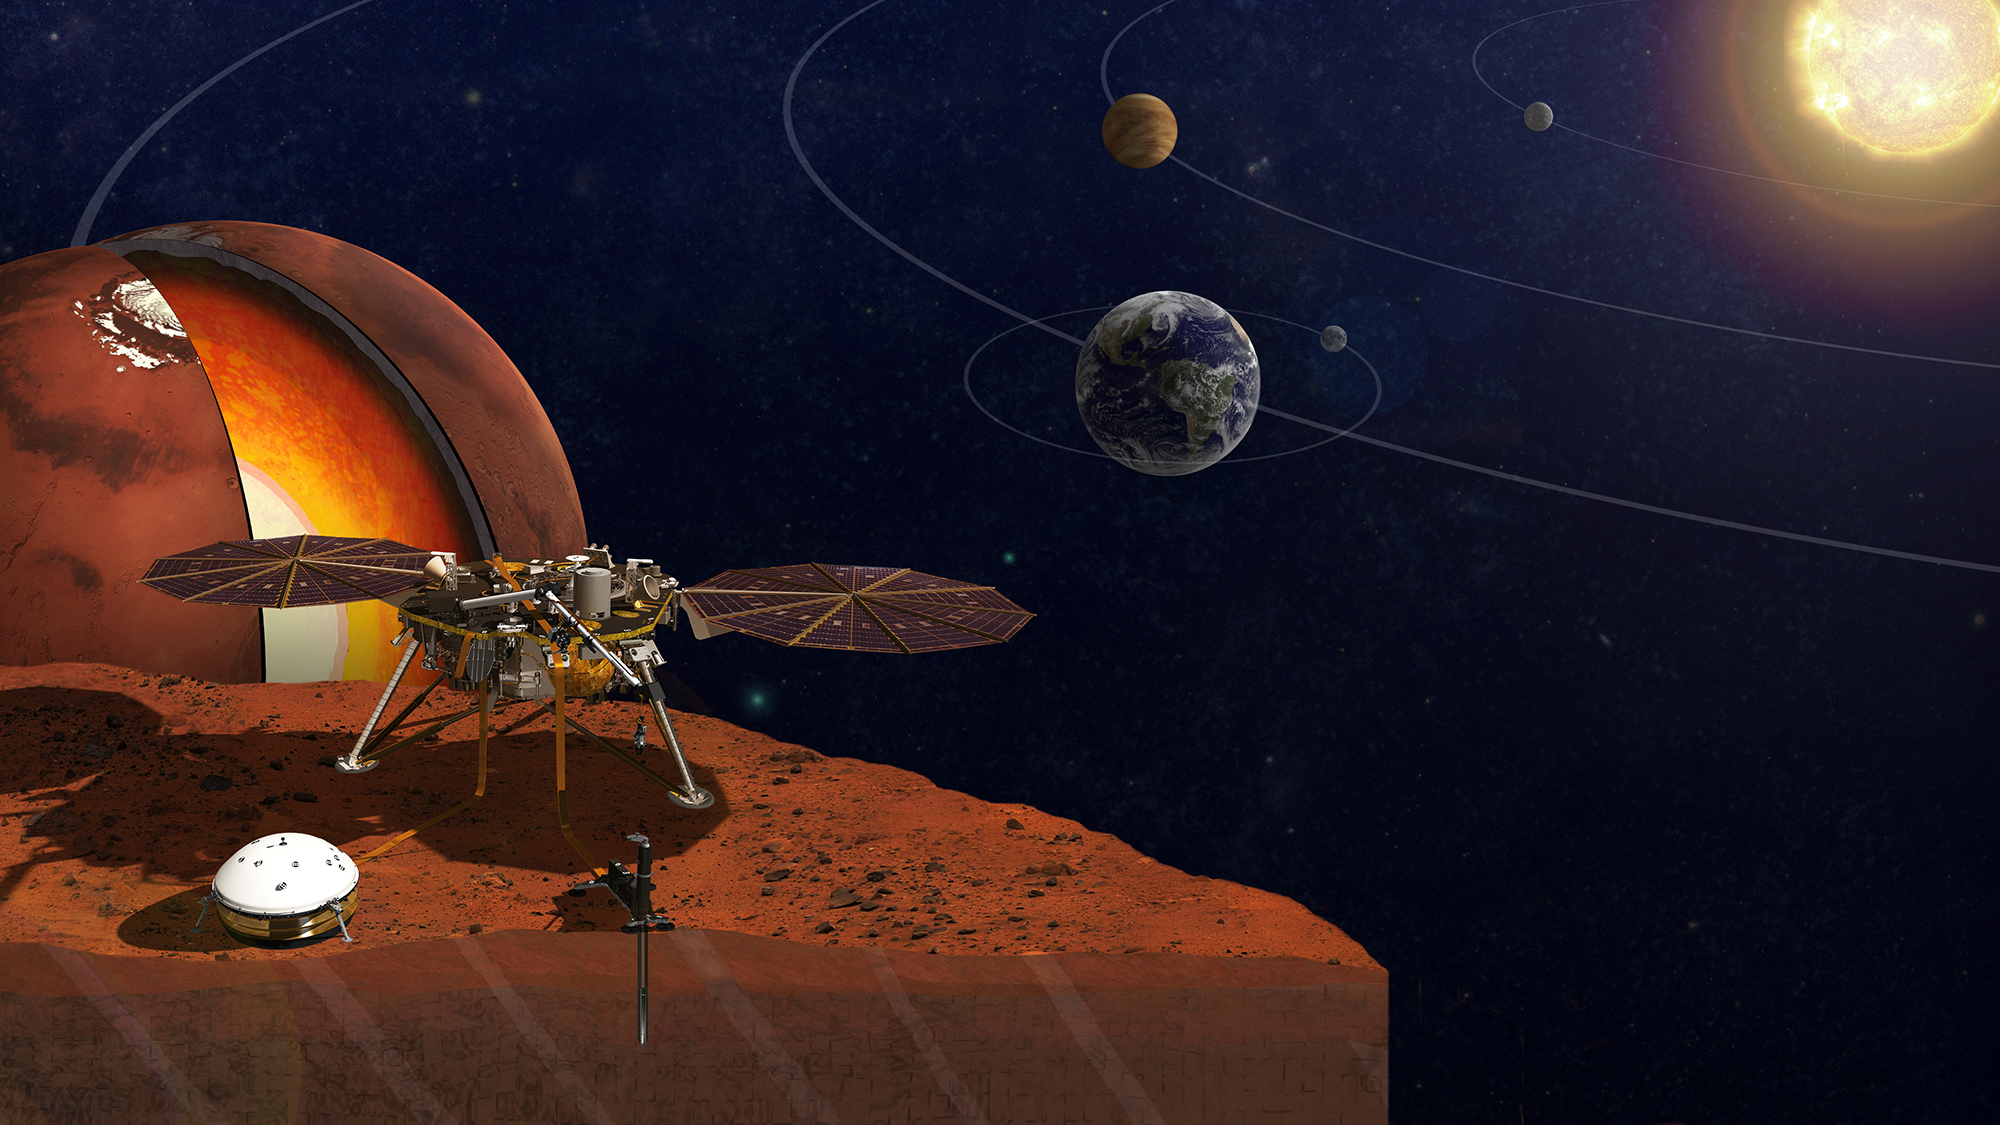 Another Chance to Put Your Name on Mars | NASA